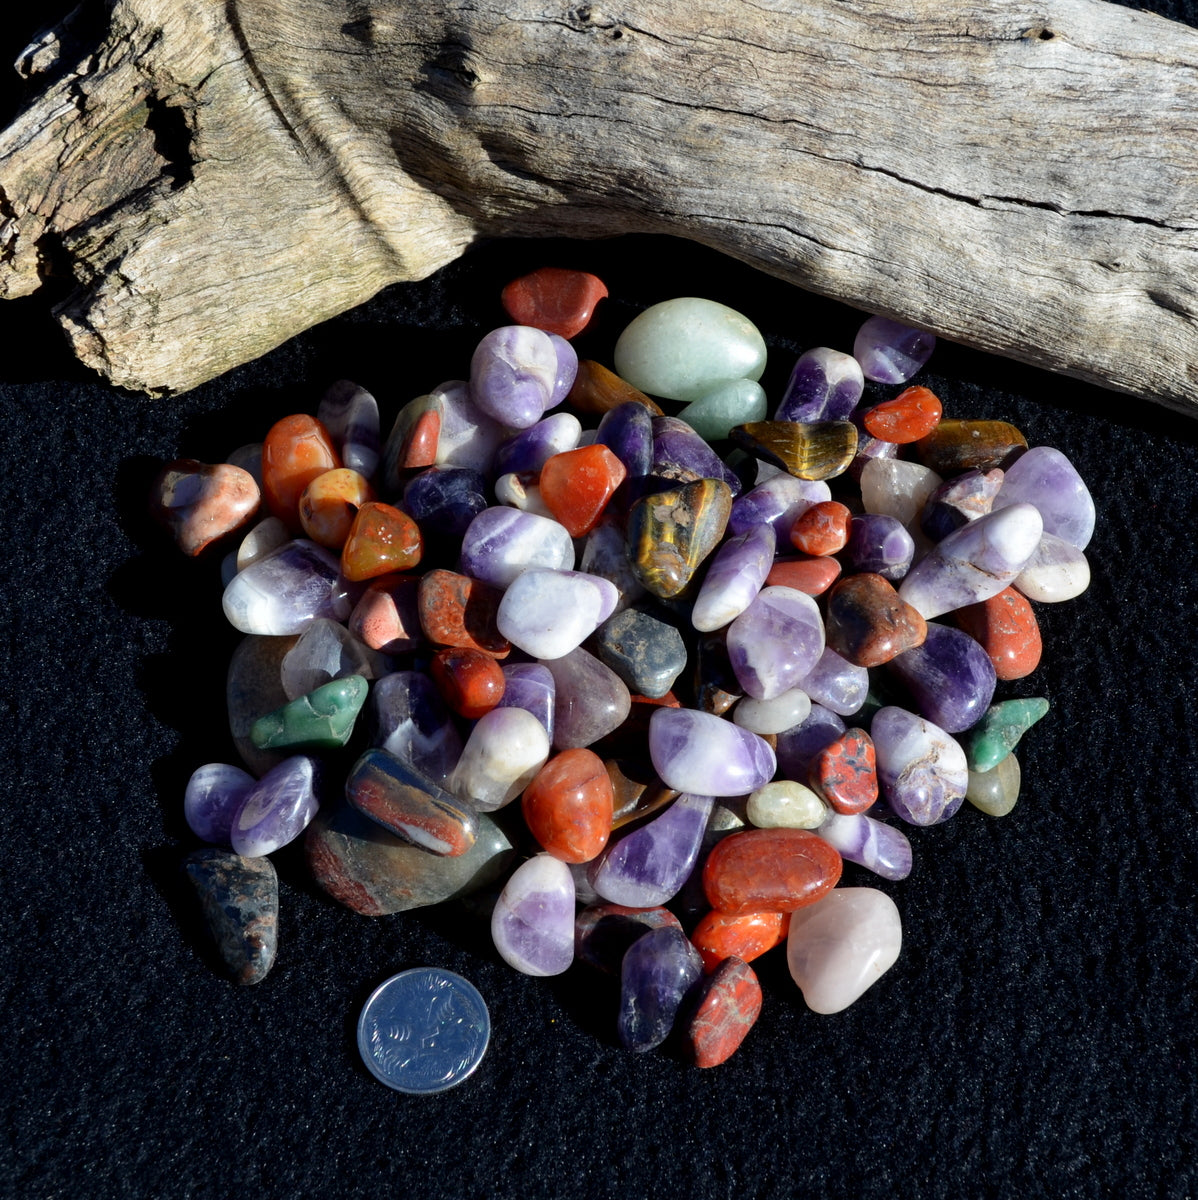 Mixed Tumblestones Africa 200gms Rose Quartz Tiger Eye Unakite Carnelian - Shop Now at Illiom Crystals - We Have Afterpay